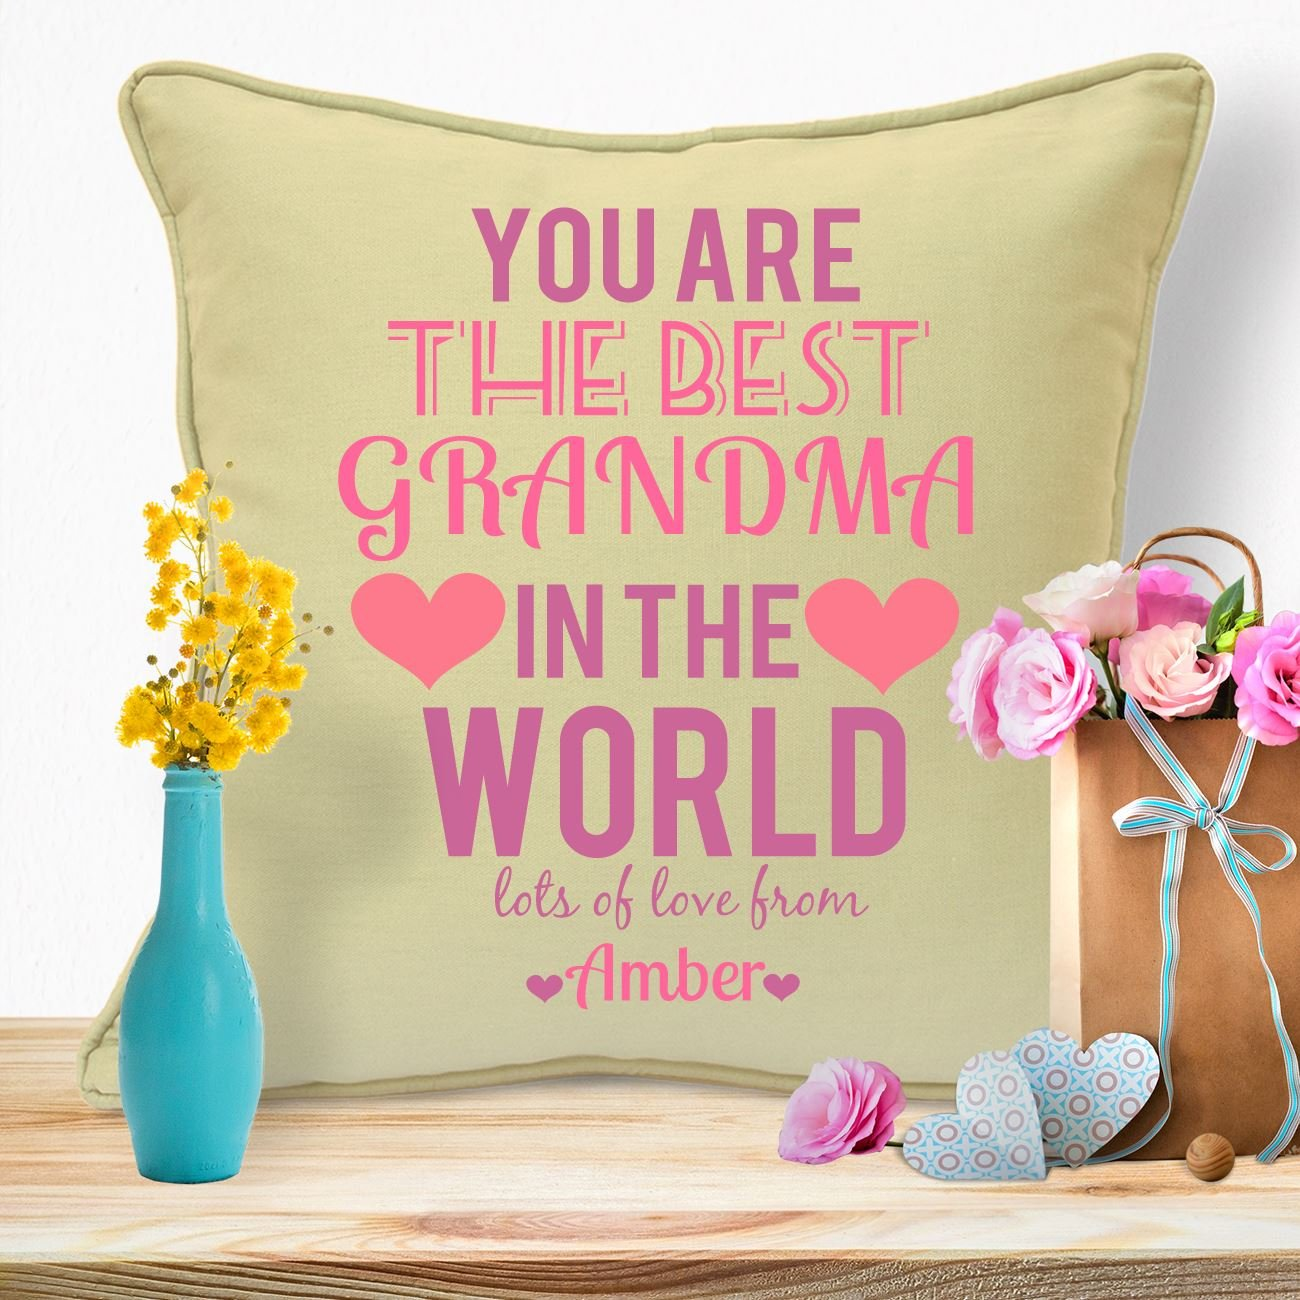 Personalised Gifts For Grandma Nanny Granny Mothers Day Birthday Christmas Xmas From Grandson Granddaughter Grandchildren Grandkids Long Distance First Time Grandmothers Worlds Best Grandma Cushion